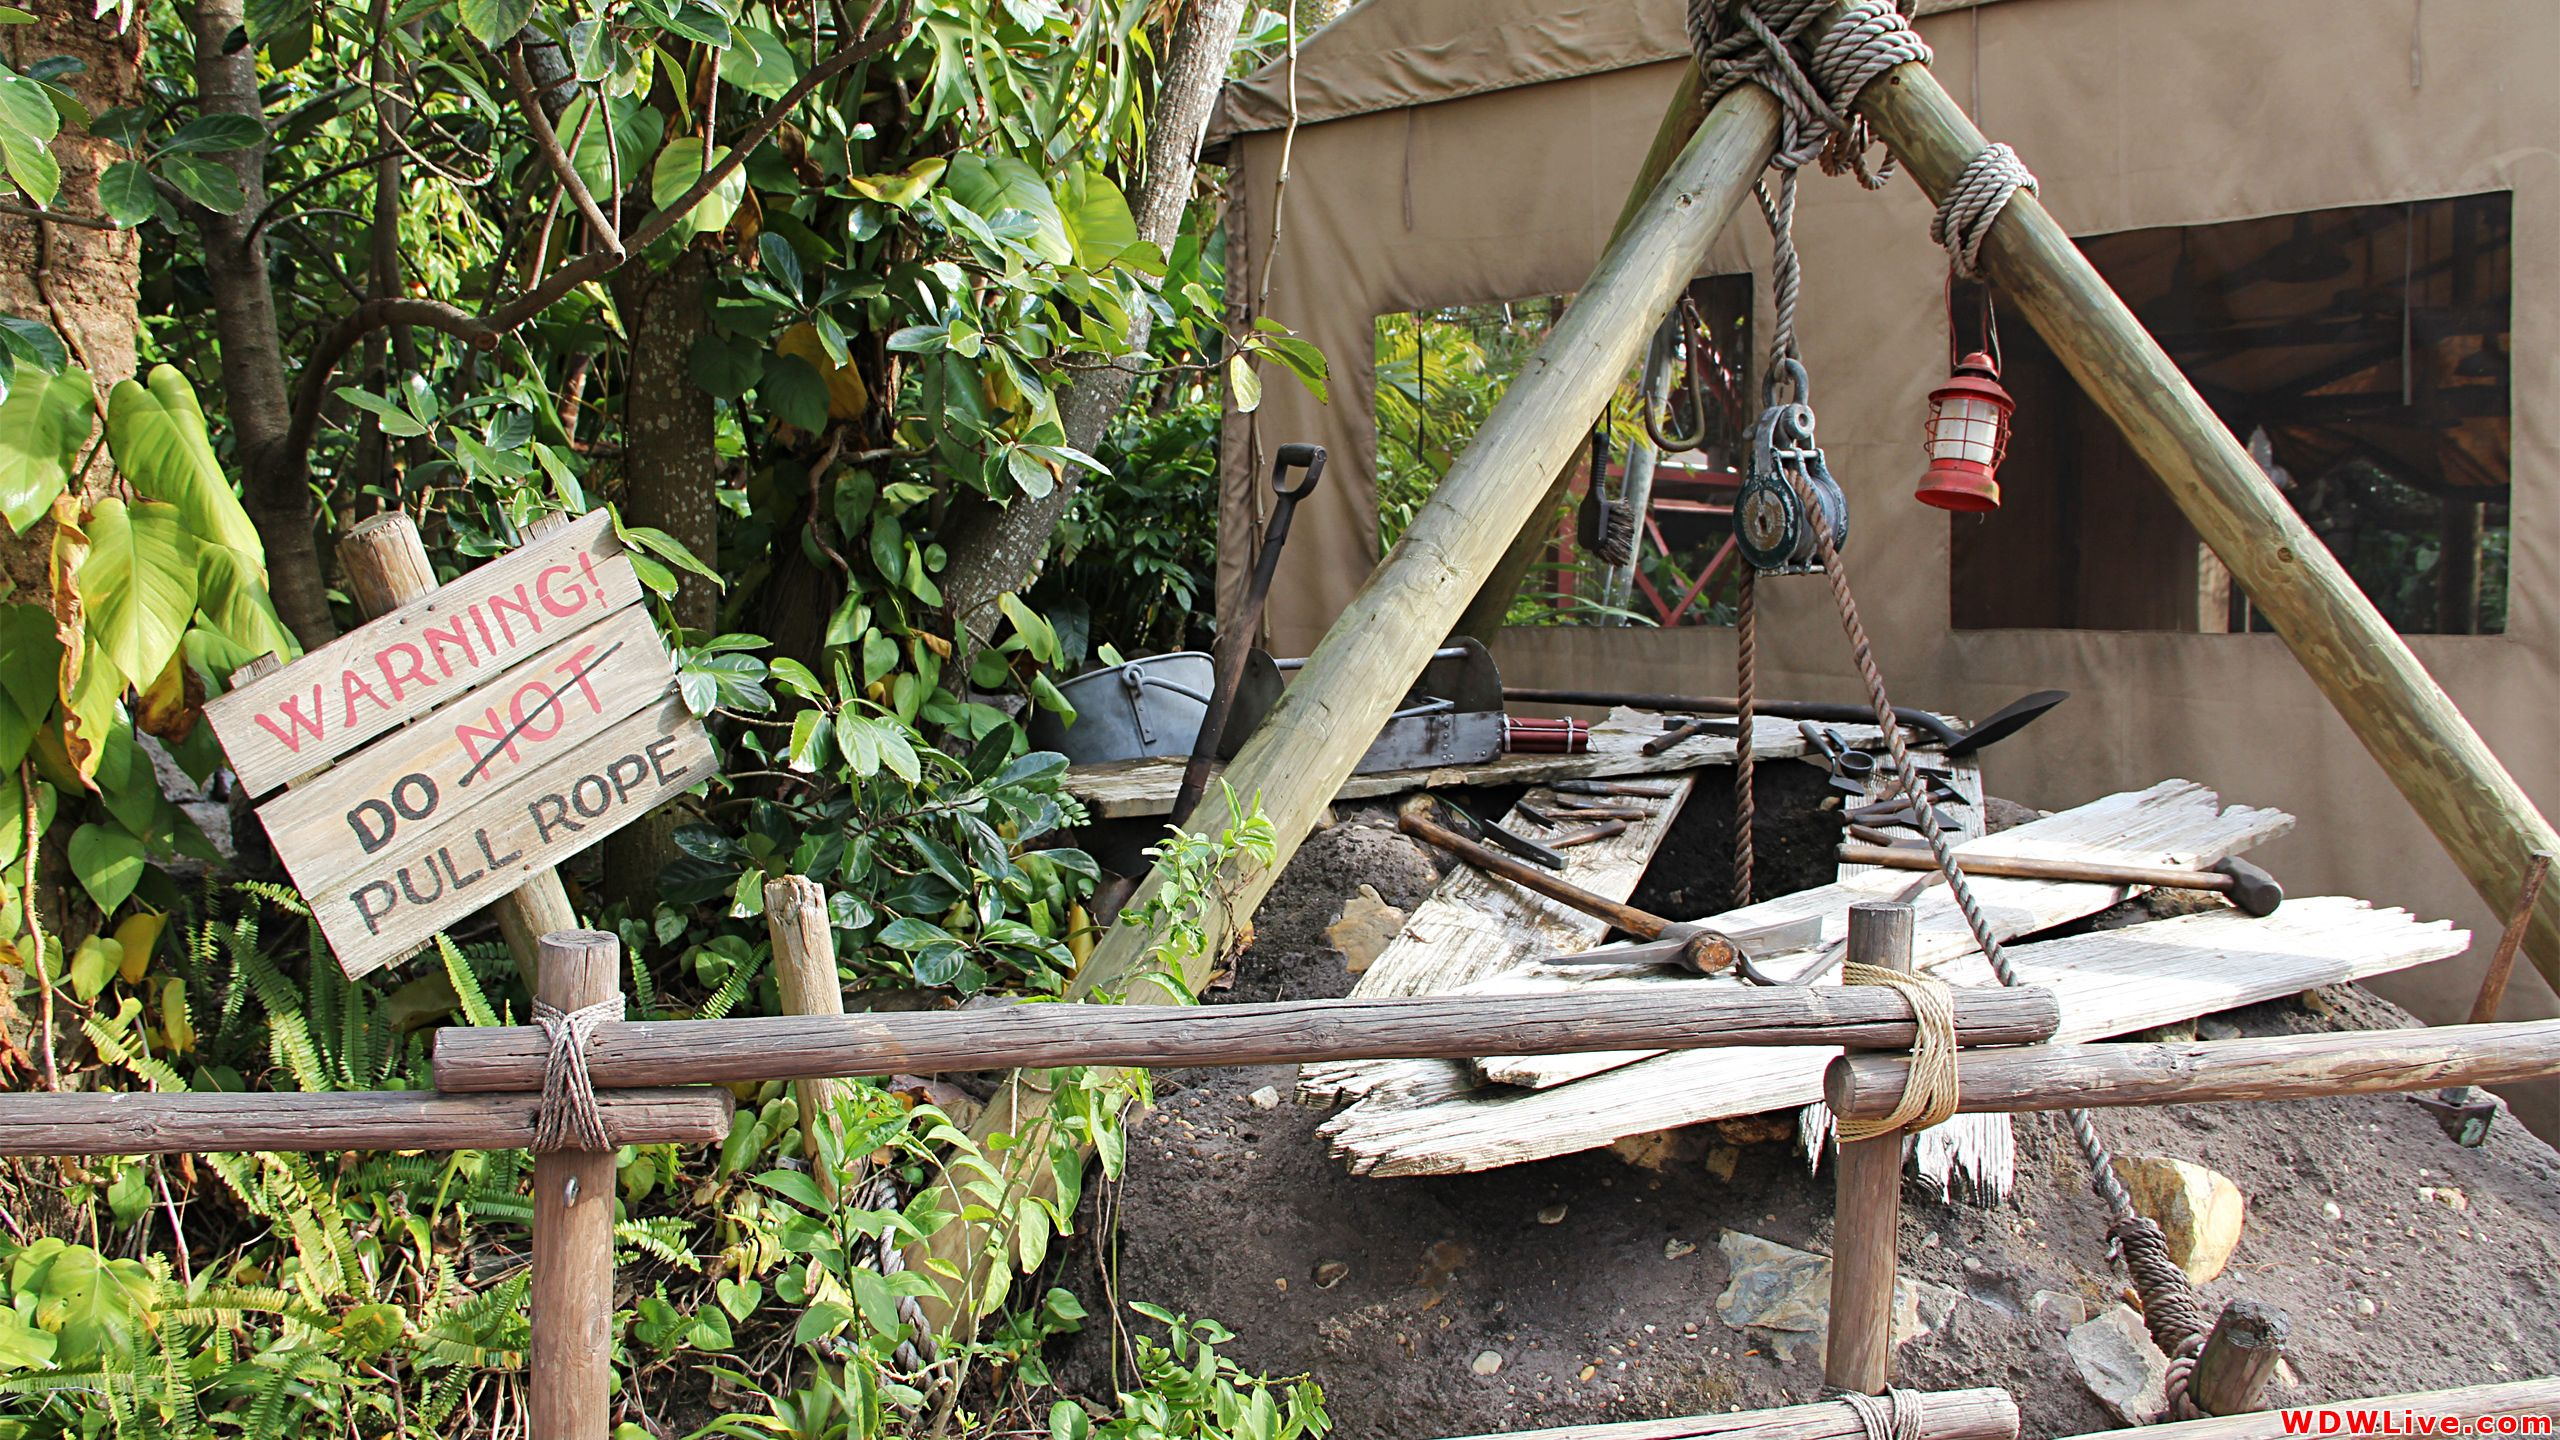 Image result for do not pull sign indiana jones stunt spectacular